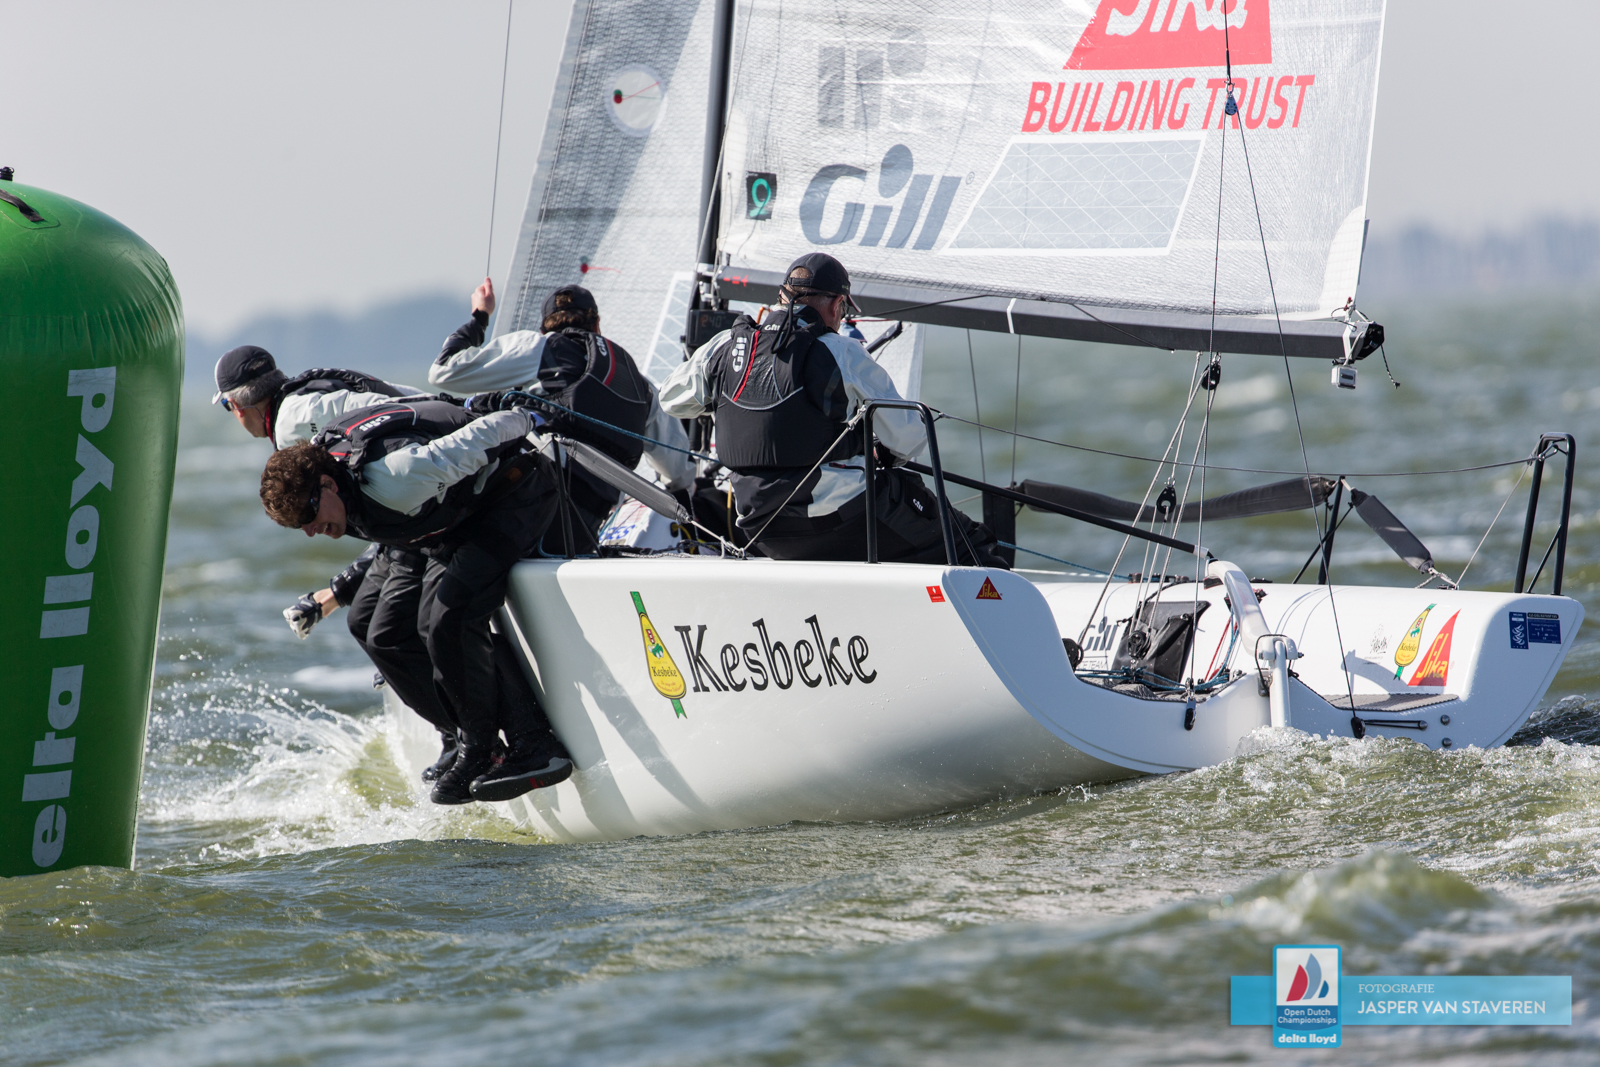 Ronald Veraar's Team Kesbeke/Sika/Gill NED827 - photo Jasper van Staveren